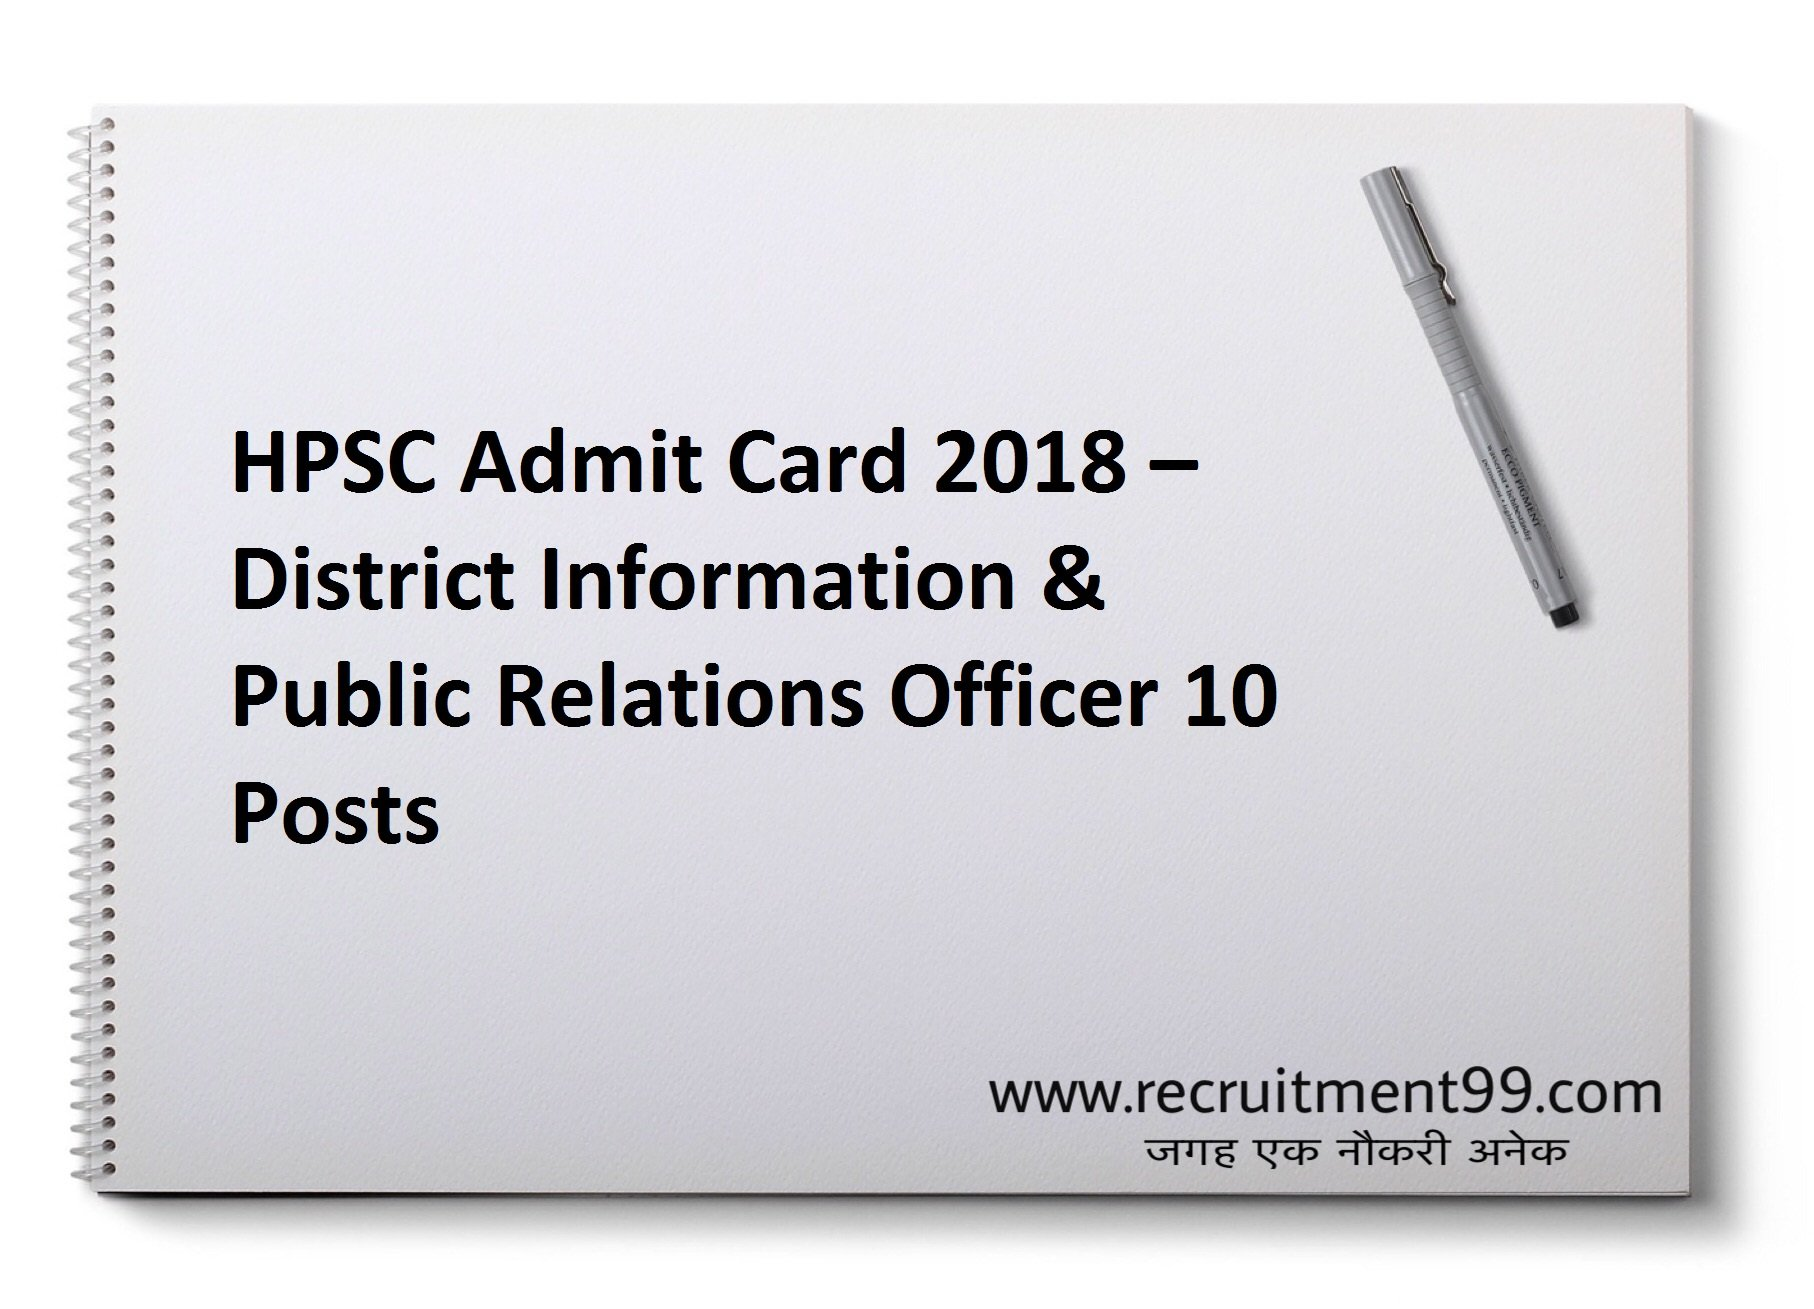 HPSC District Information & Public Relations Officer Recruitment Admit Card & Result 2018